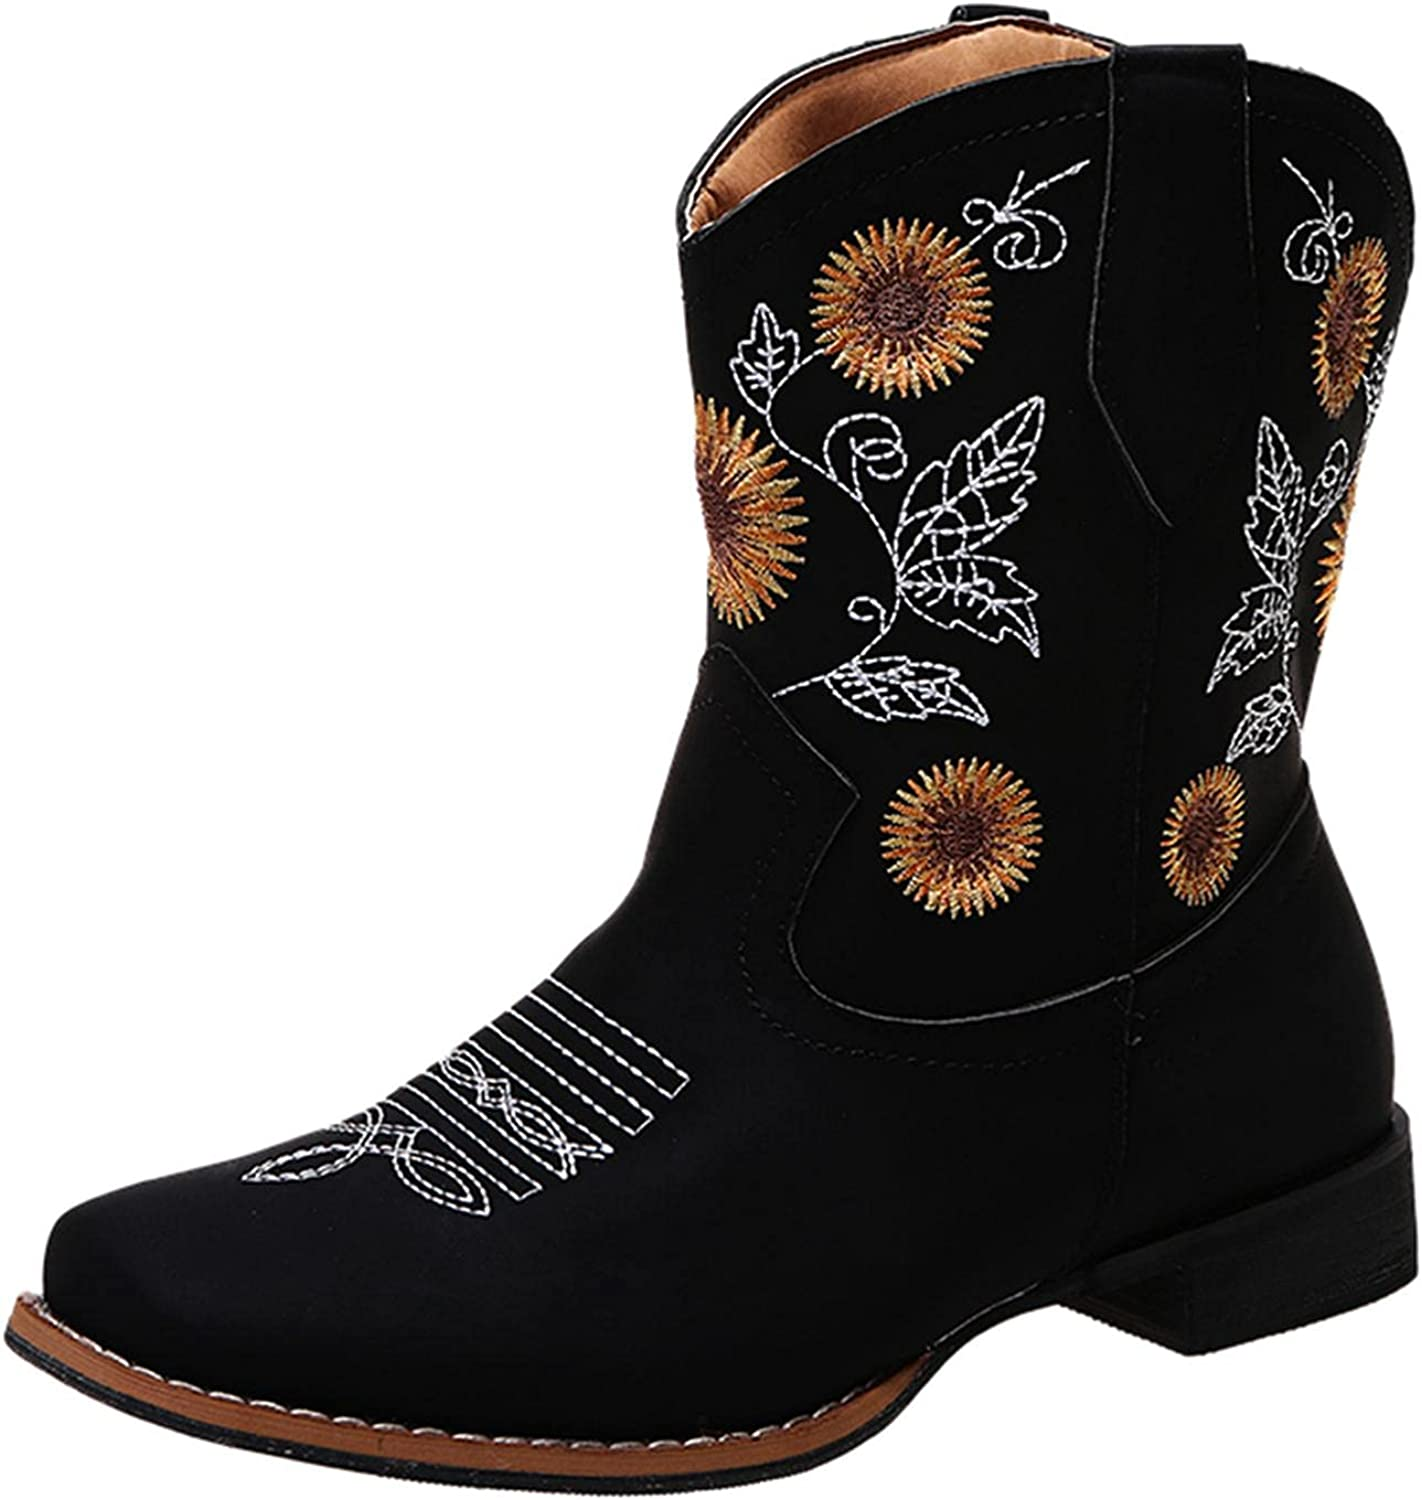 55% OFF Masbird Cowboy Booties for Large special price !! Womens Western Embroide Boot Low Heel